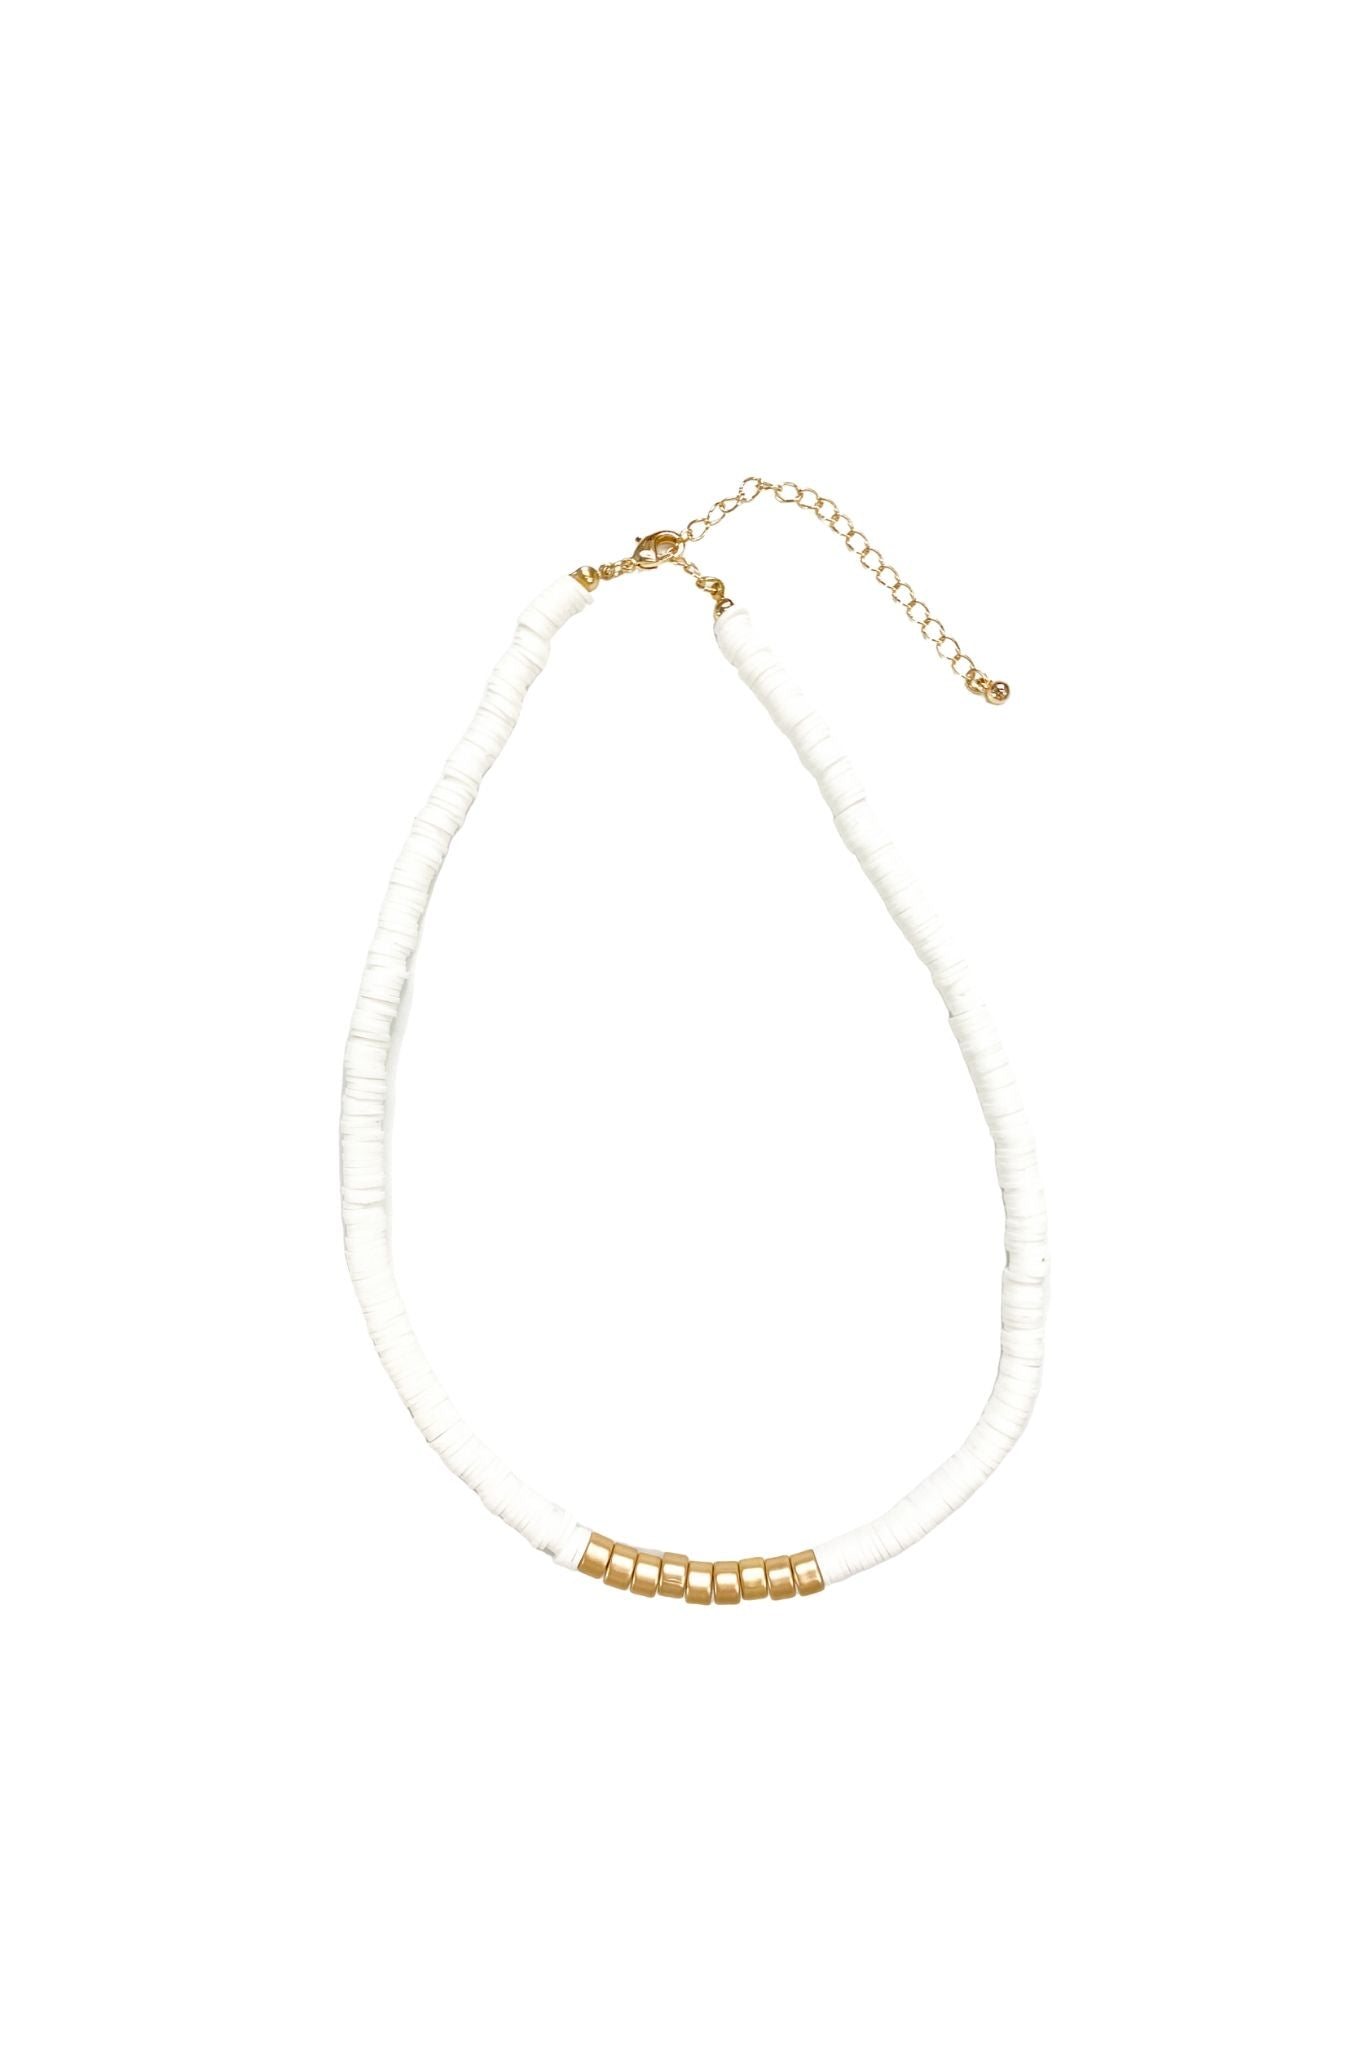 White Disc Short Necklace w/ Gold Accent Beads